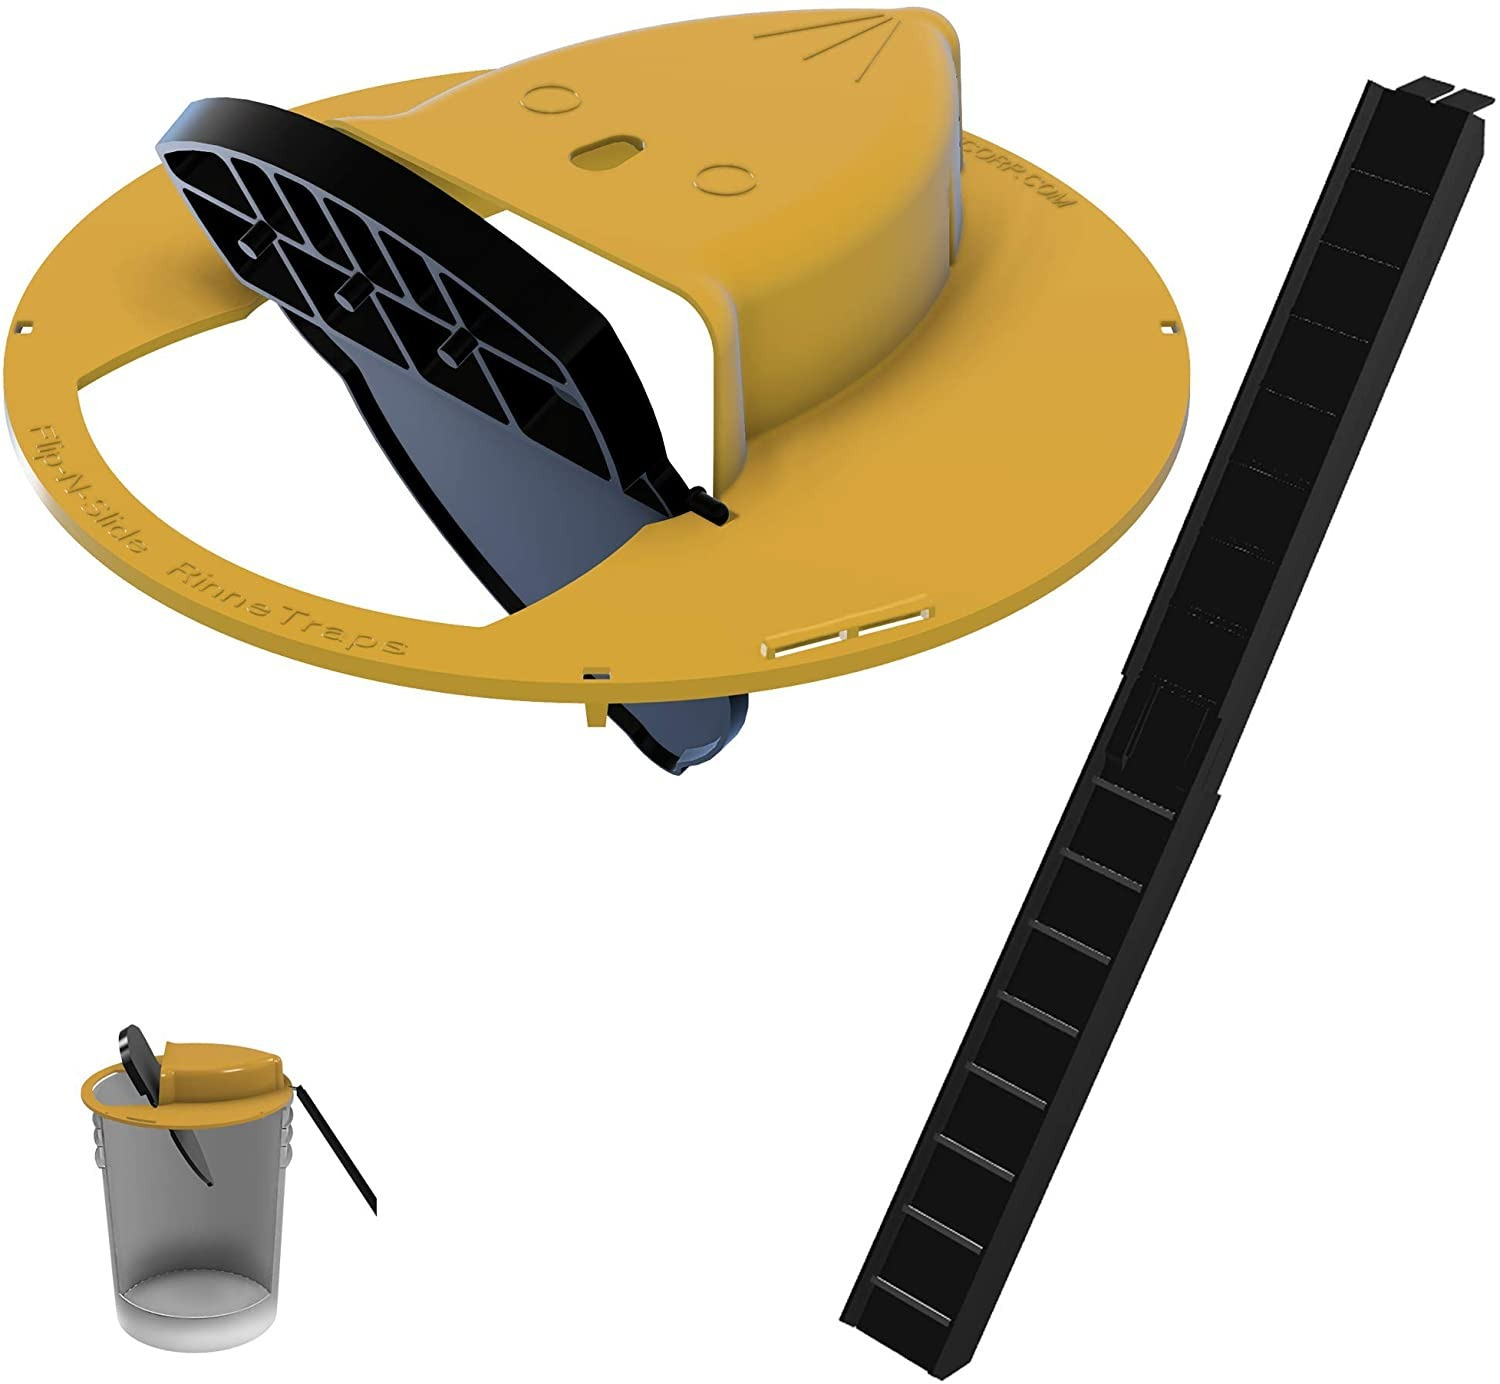 New Upgrade And Detachable Slide Bucket Lid Mouse Rat Trap